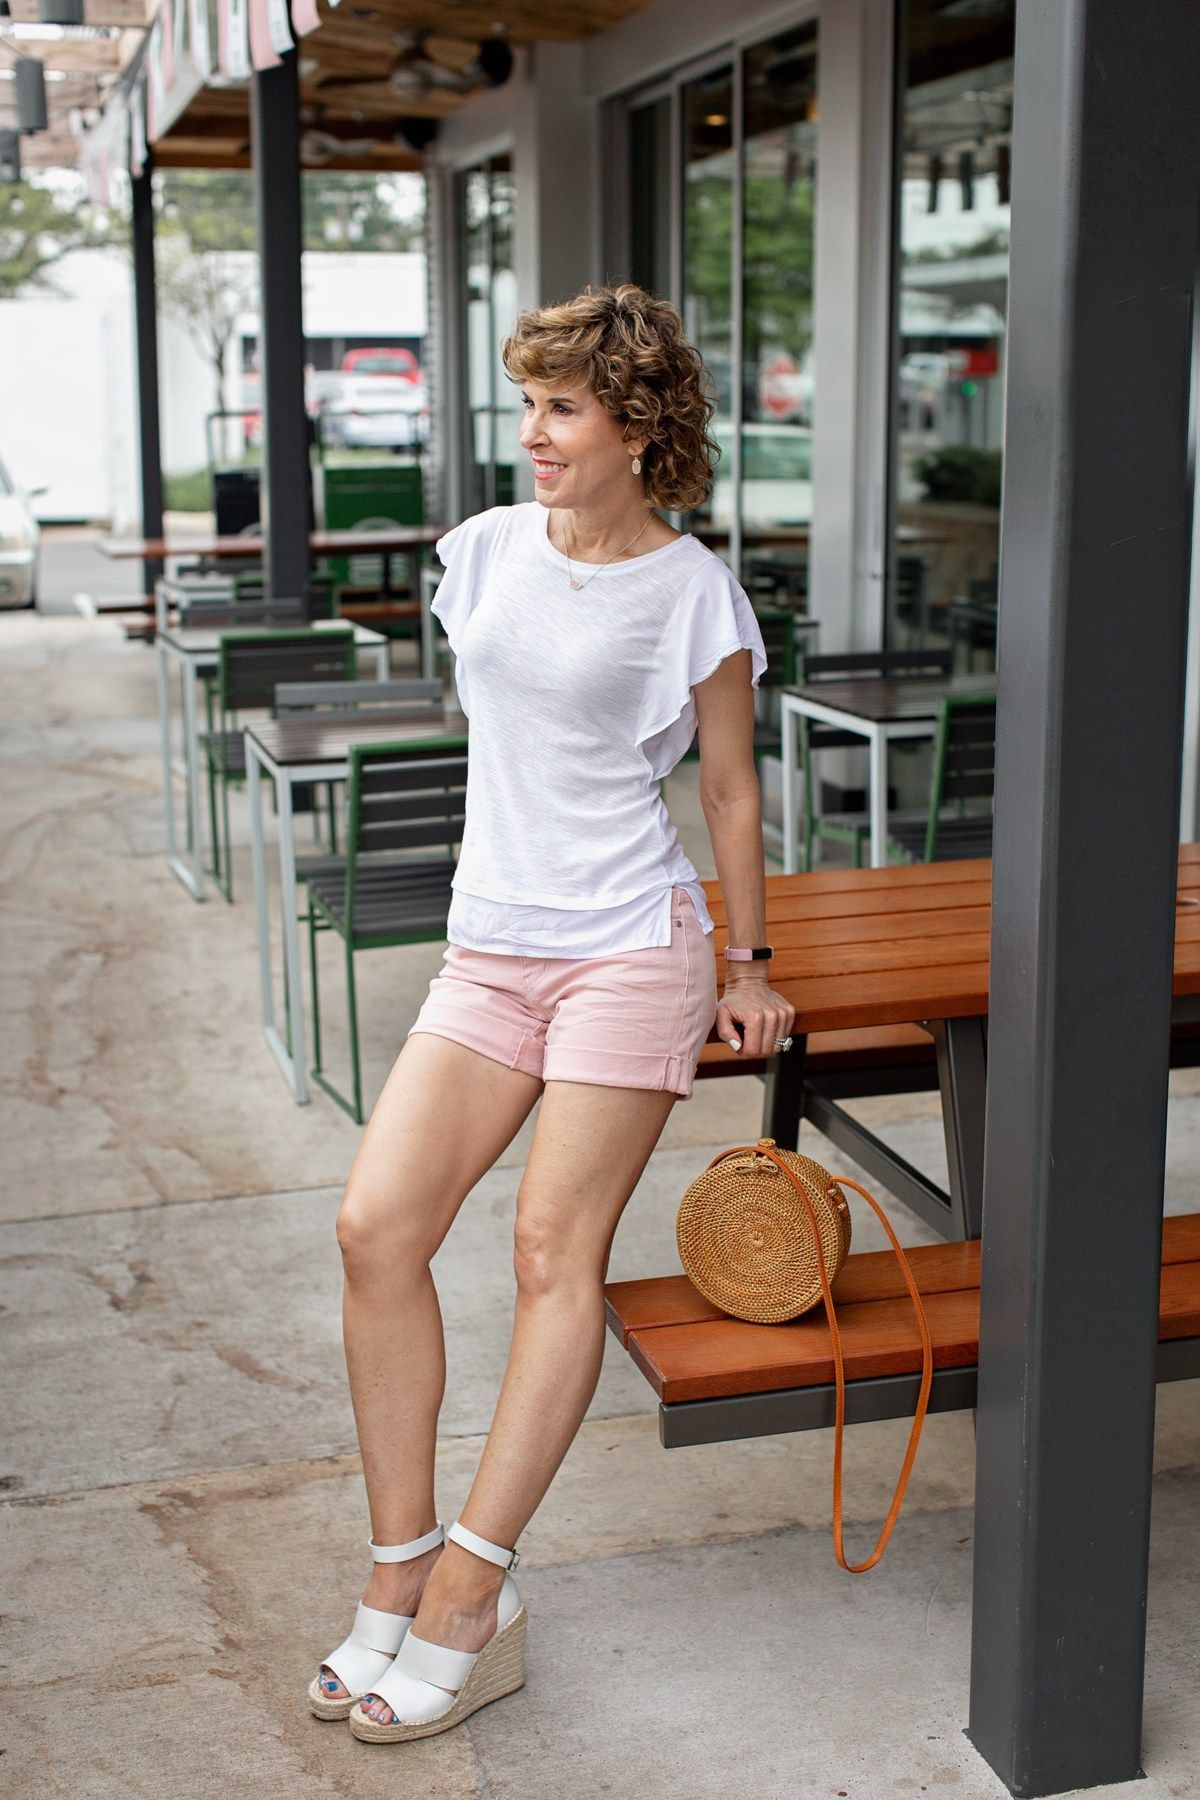 Tips To Improve The Appearance Of Middle Aged Legs Click Through For Help With Common Problems